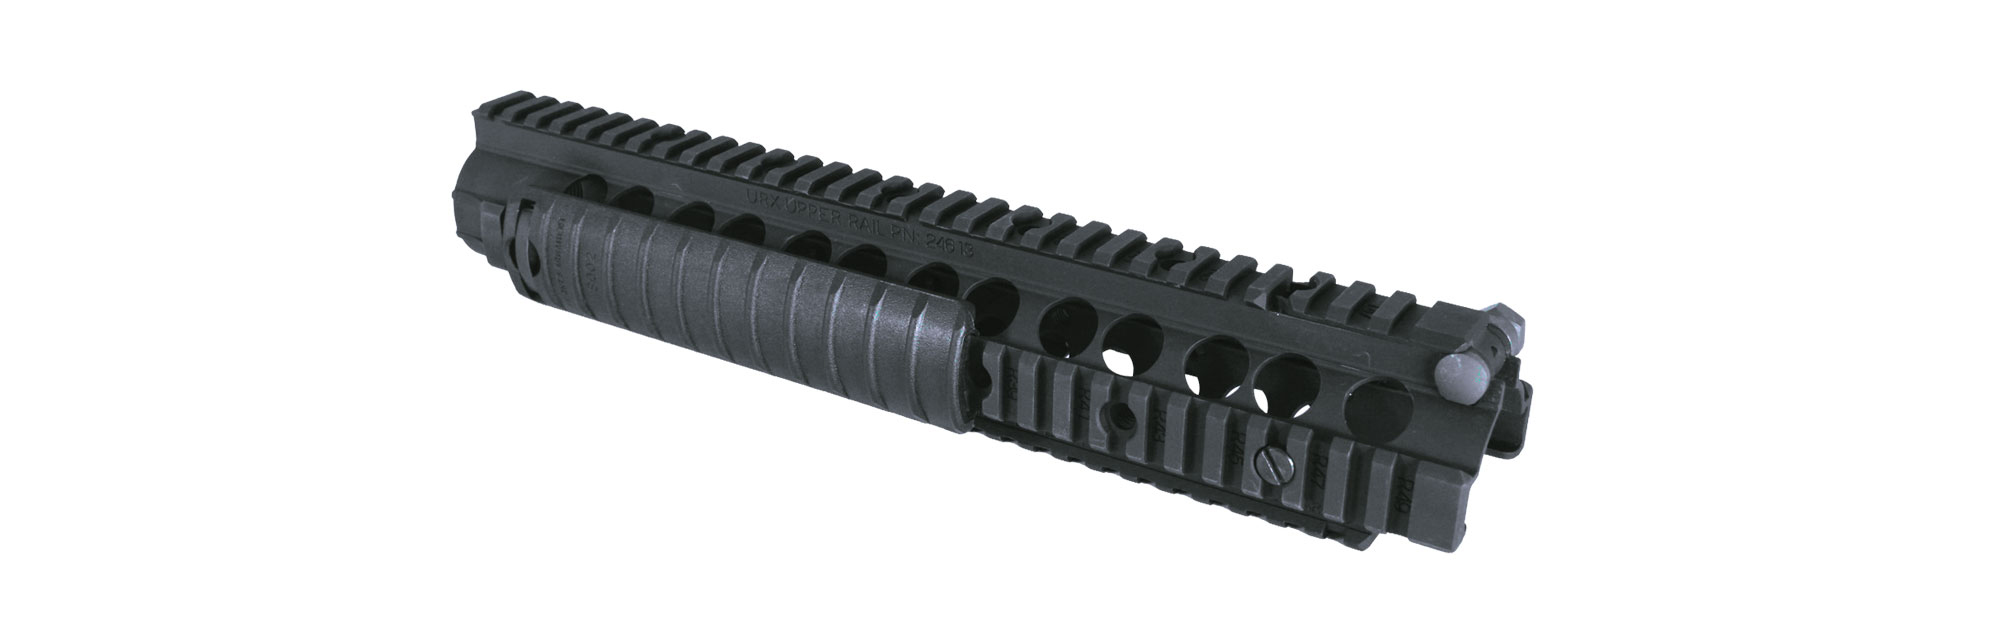 M5 Rifle Ras Forend Assembly Knights Armament